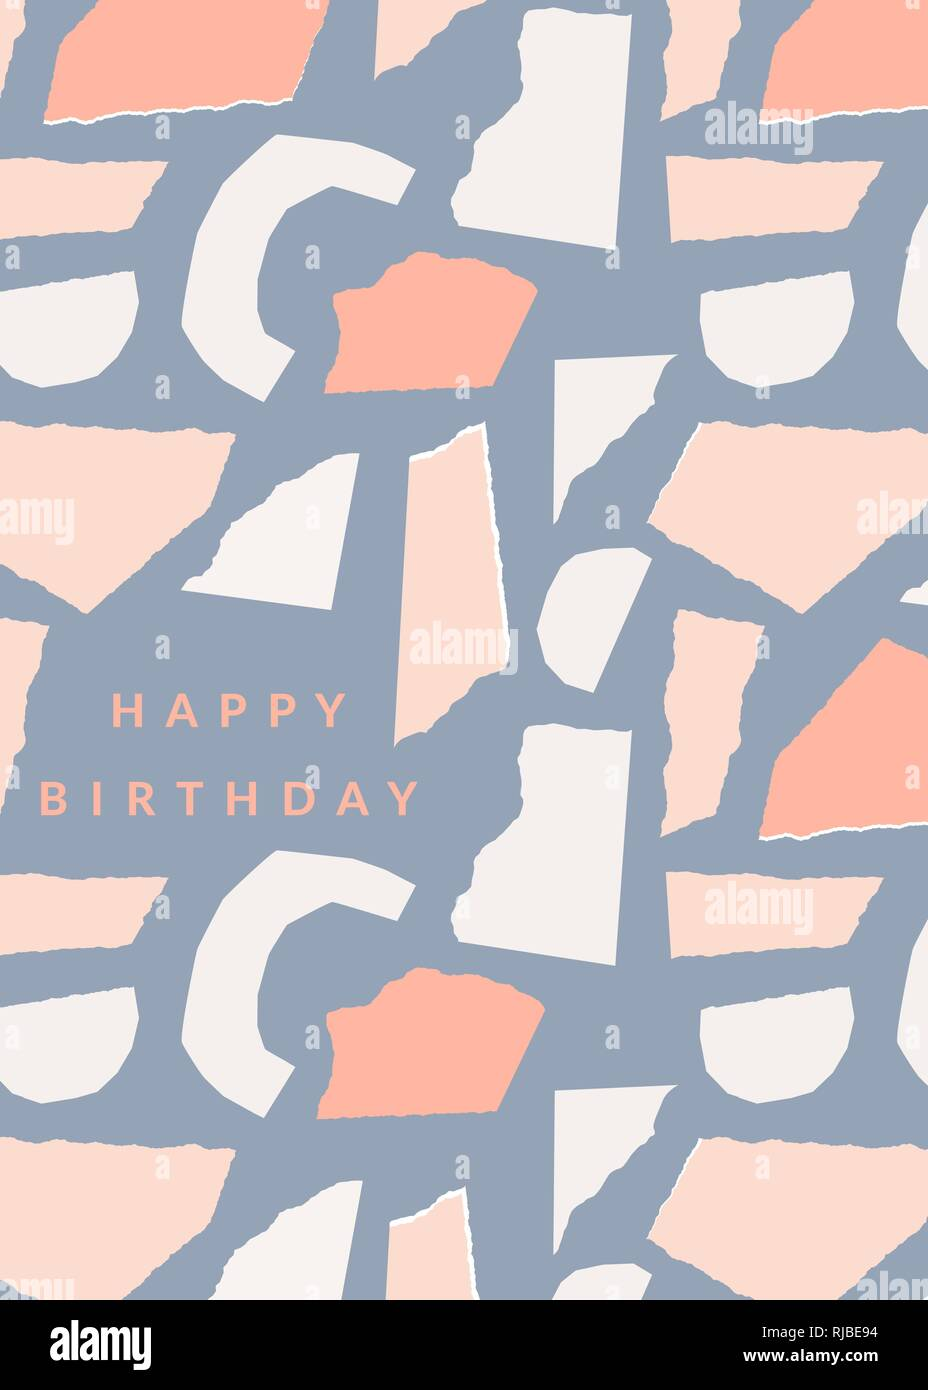 Greeting card template with torn paper pieces in pastel colors and Intended For Birthday Card Collage Template